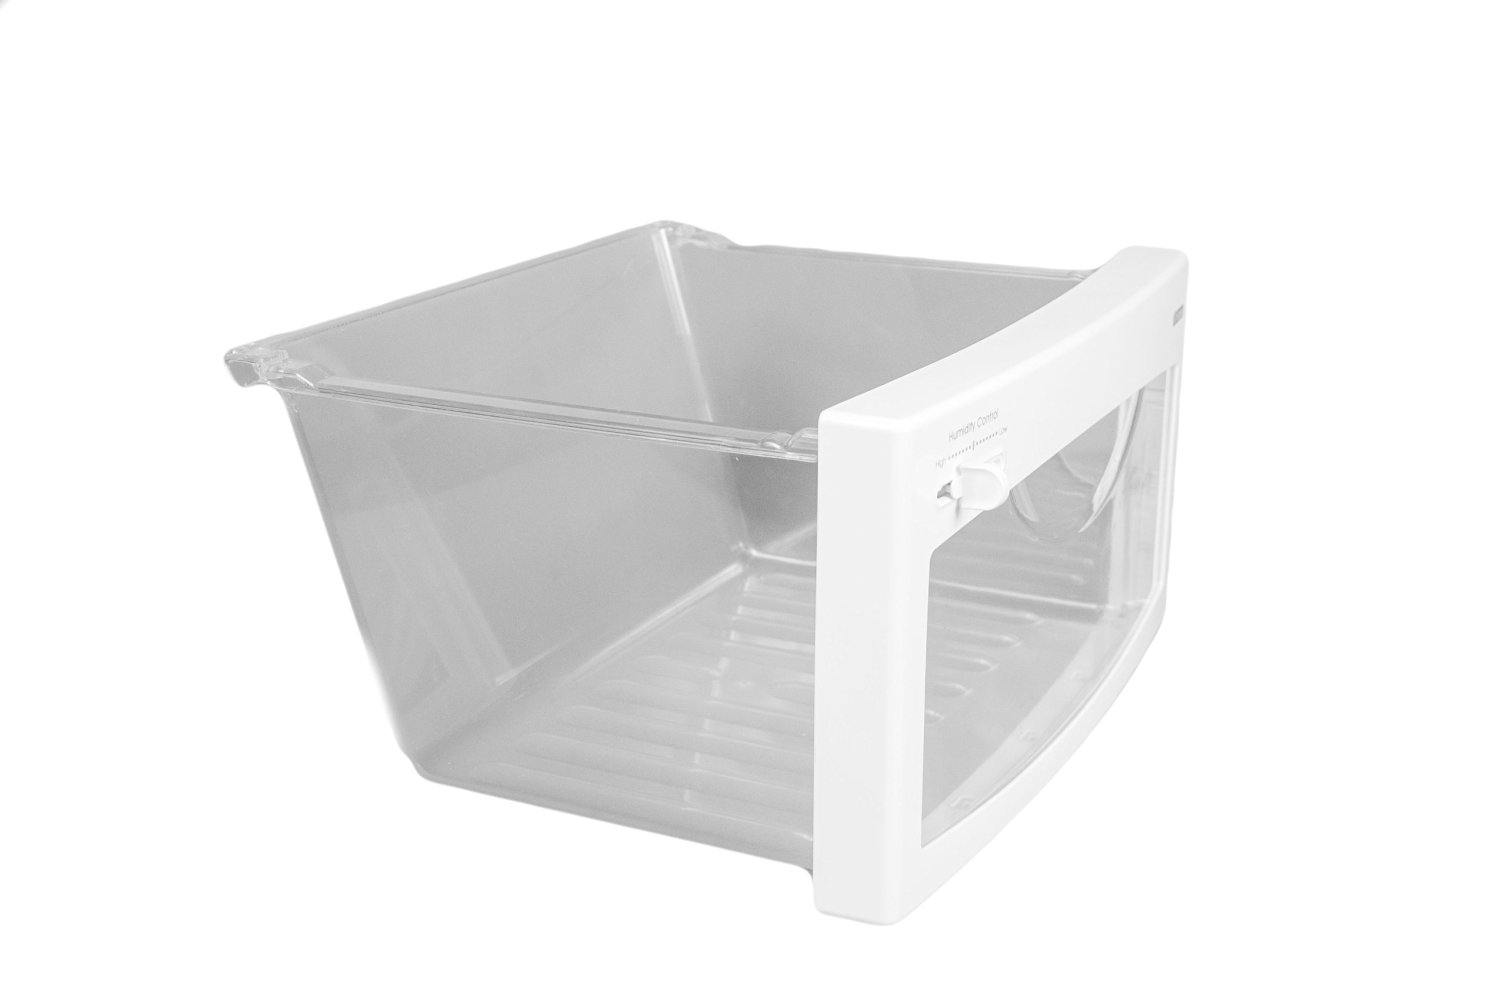 LG Electronics 3391JJ1042B Refrigerator Vegetable Crisper Drawer, Clear with White Trim